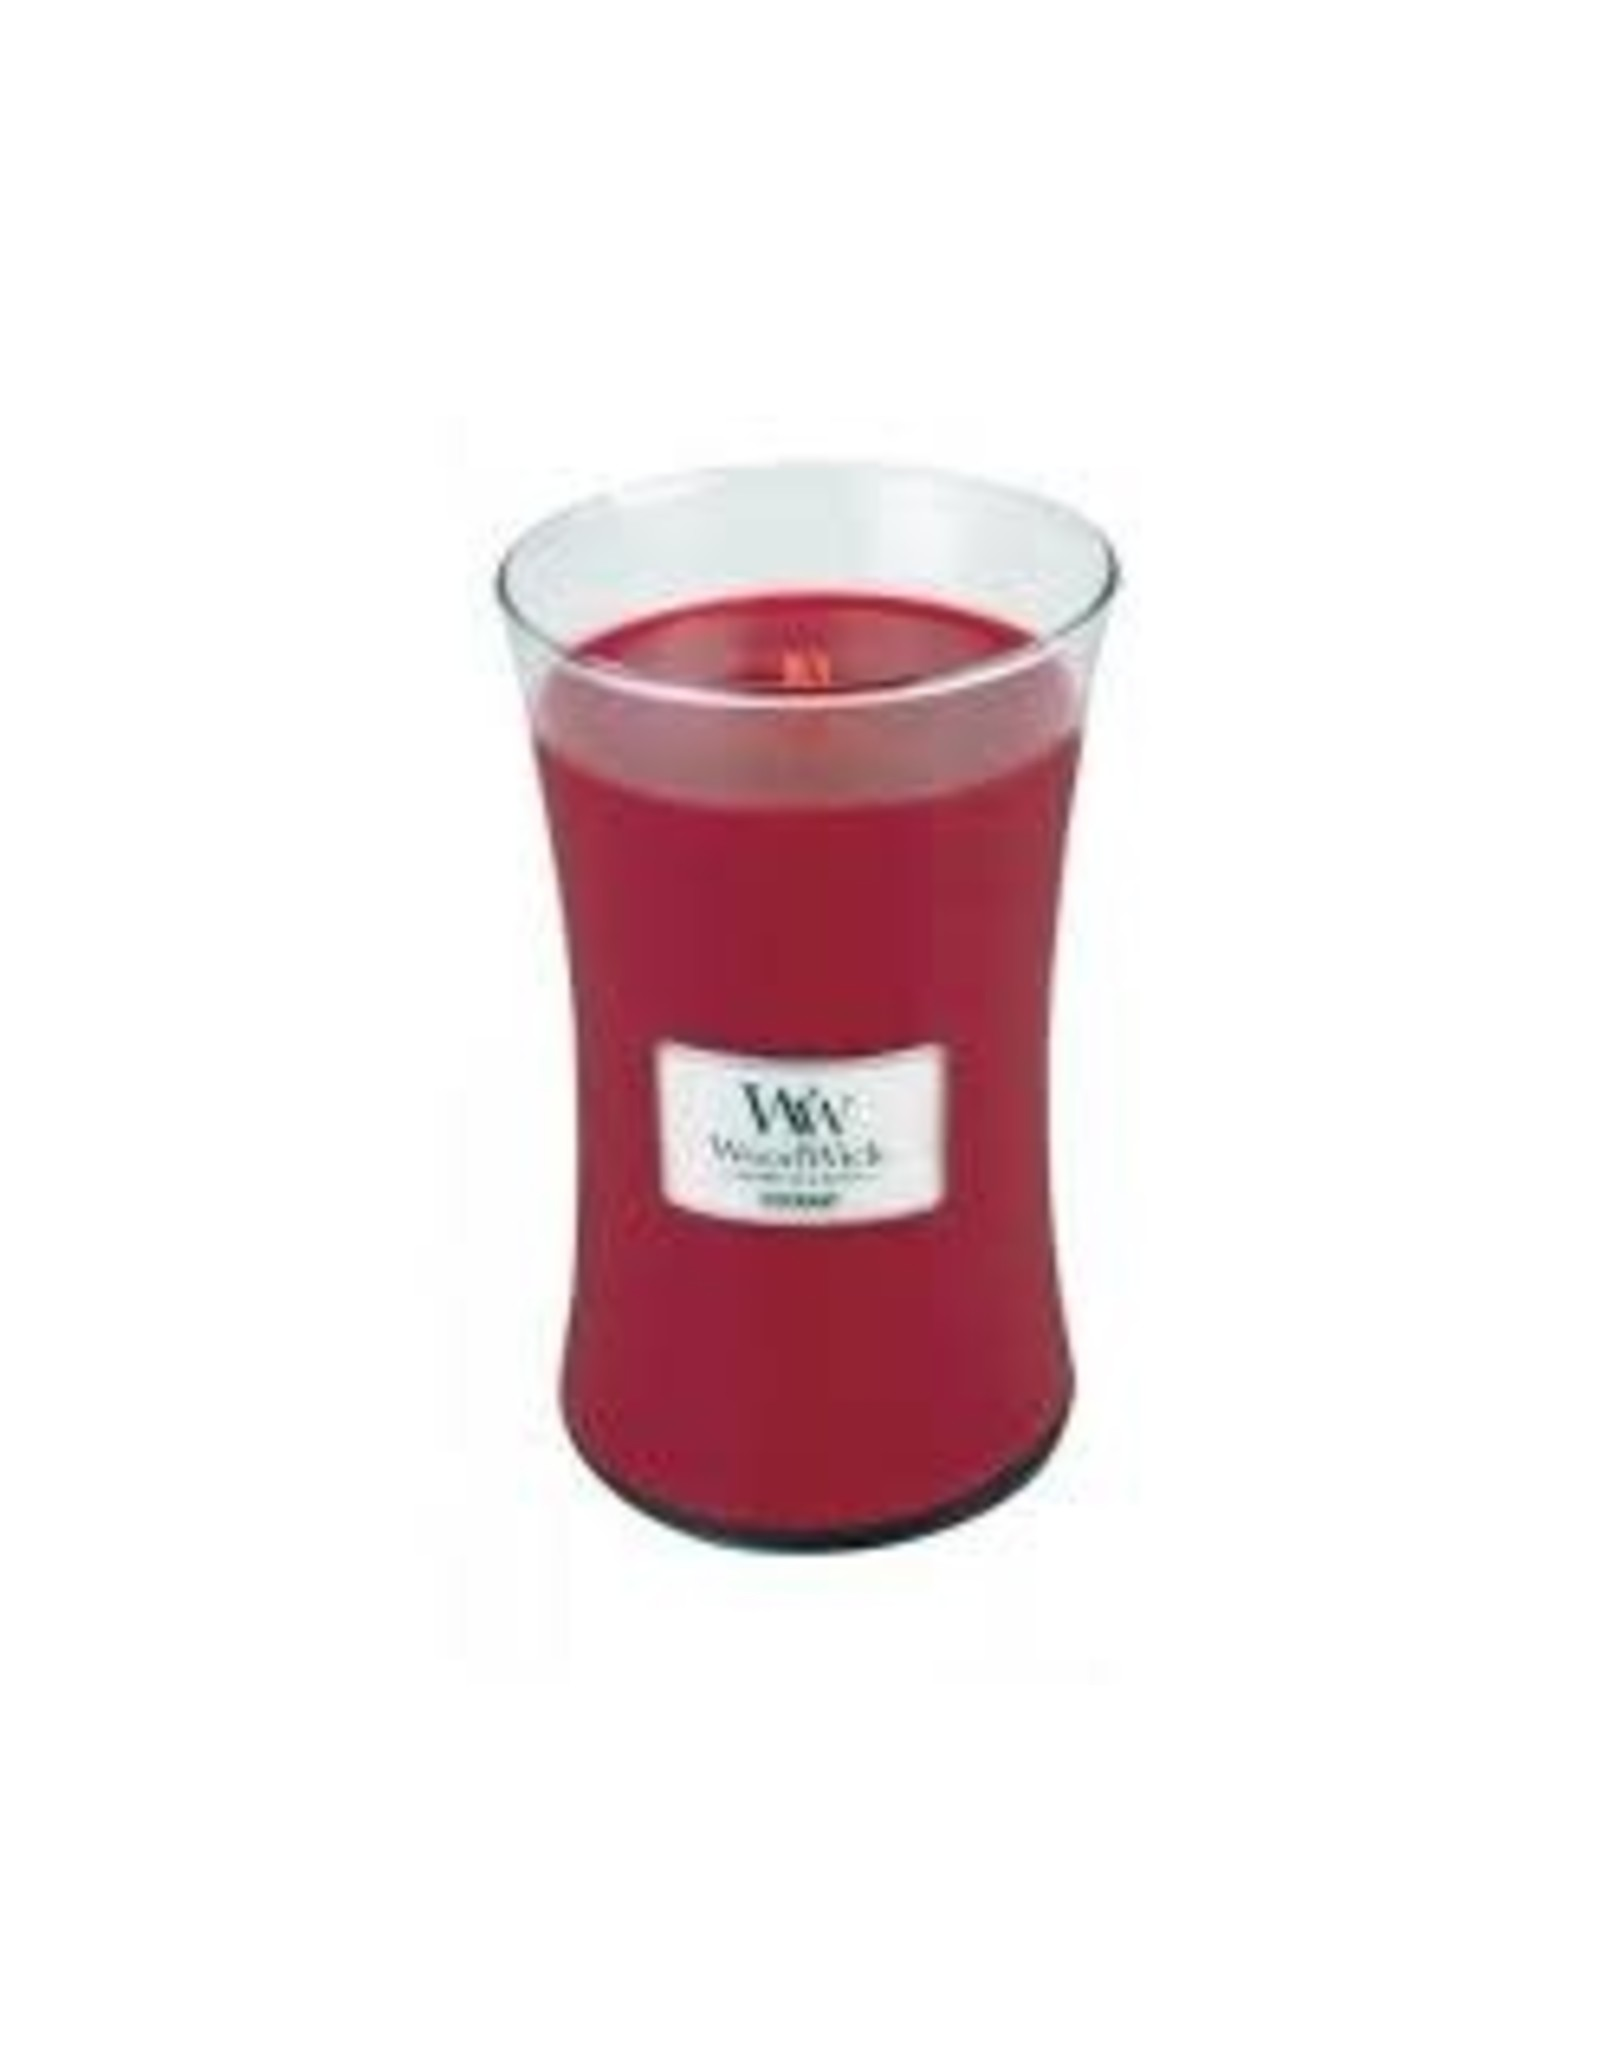 WOODWICK WOODWICK LARGE CURRANT